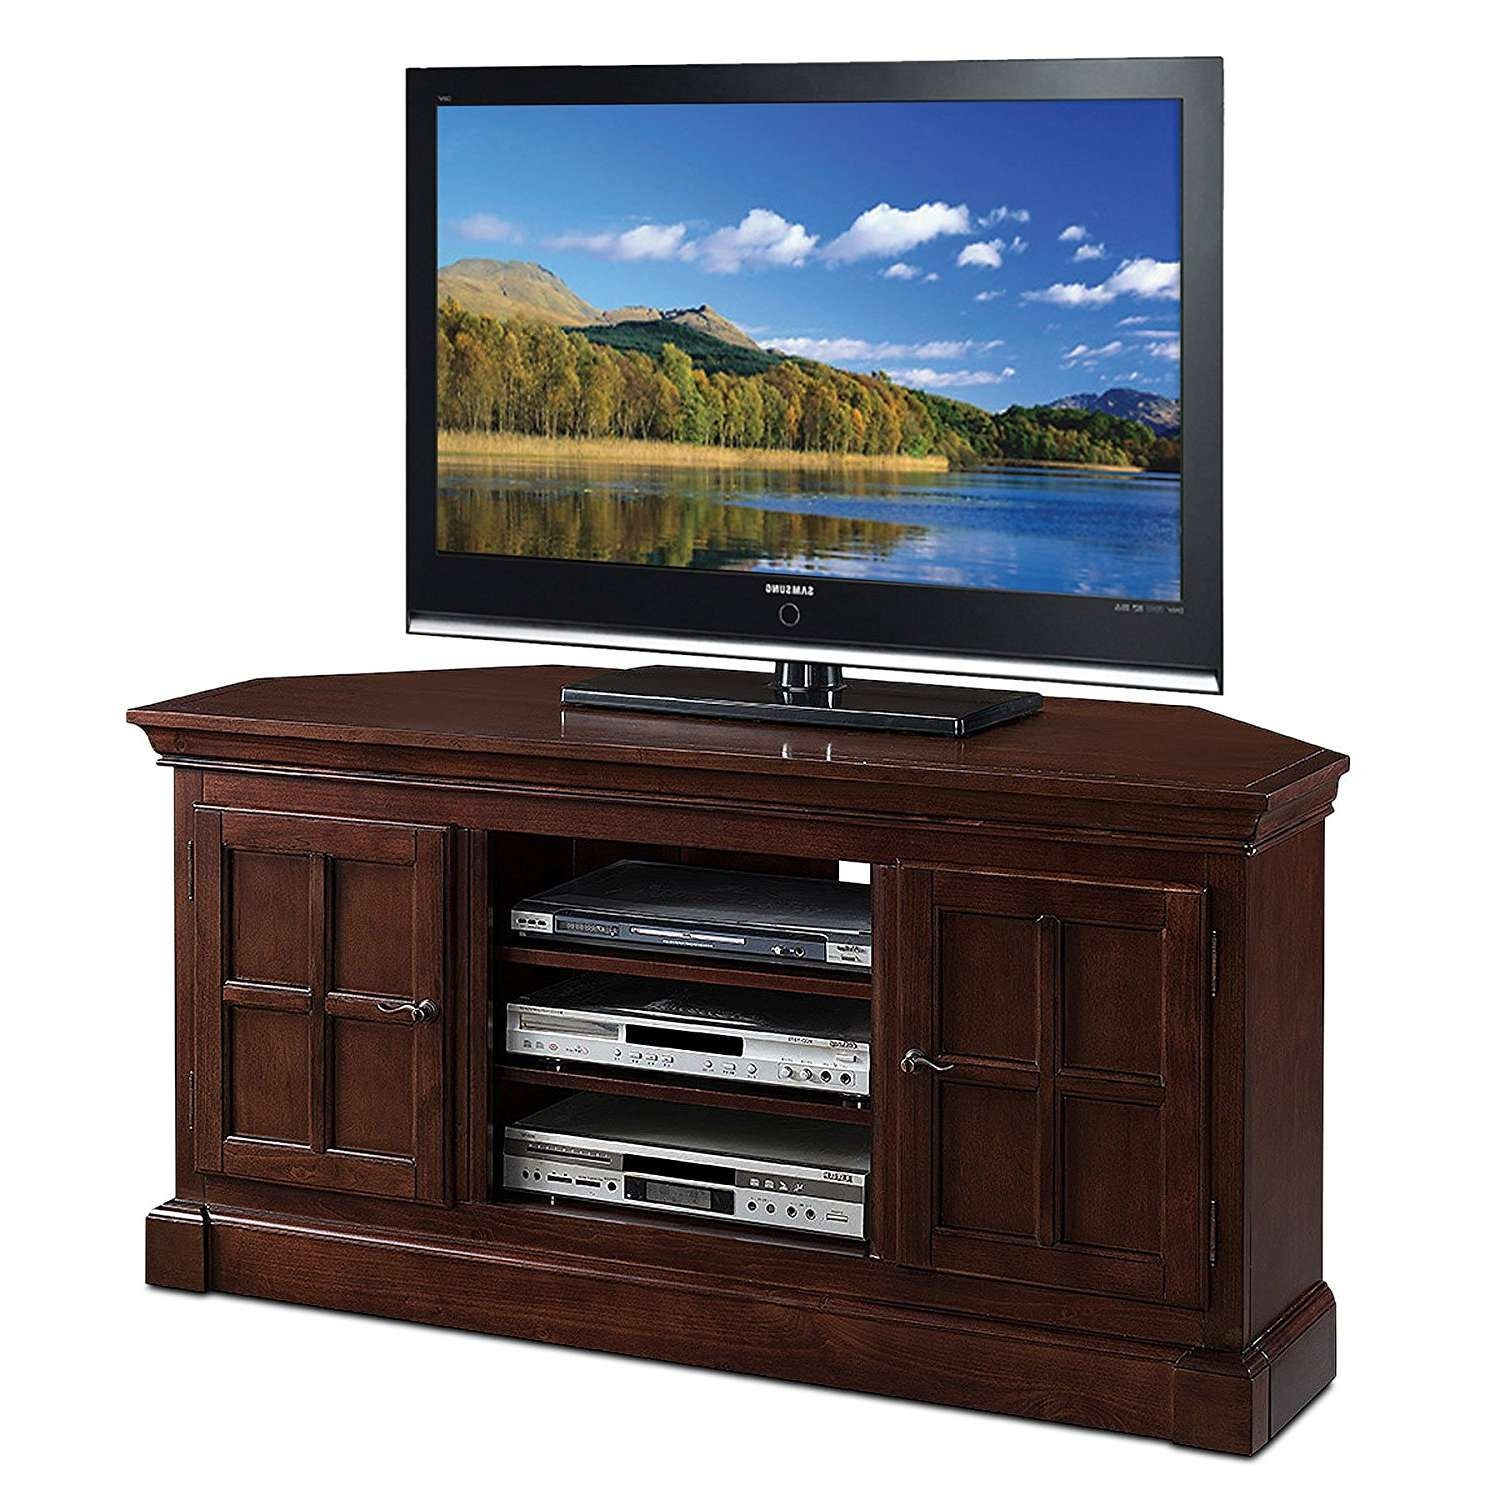 Corner Tv Stand 55 To 60 Inches Tags : 38 Remarkable Tv Stand 55 With Corner Tv Stands 40 Inch (View 15 of 20)